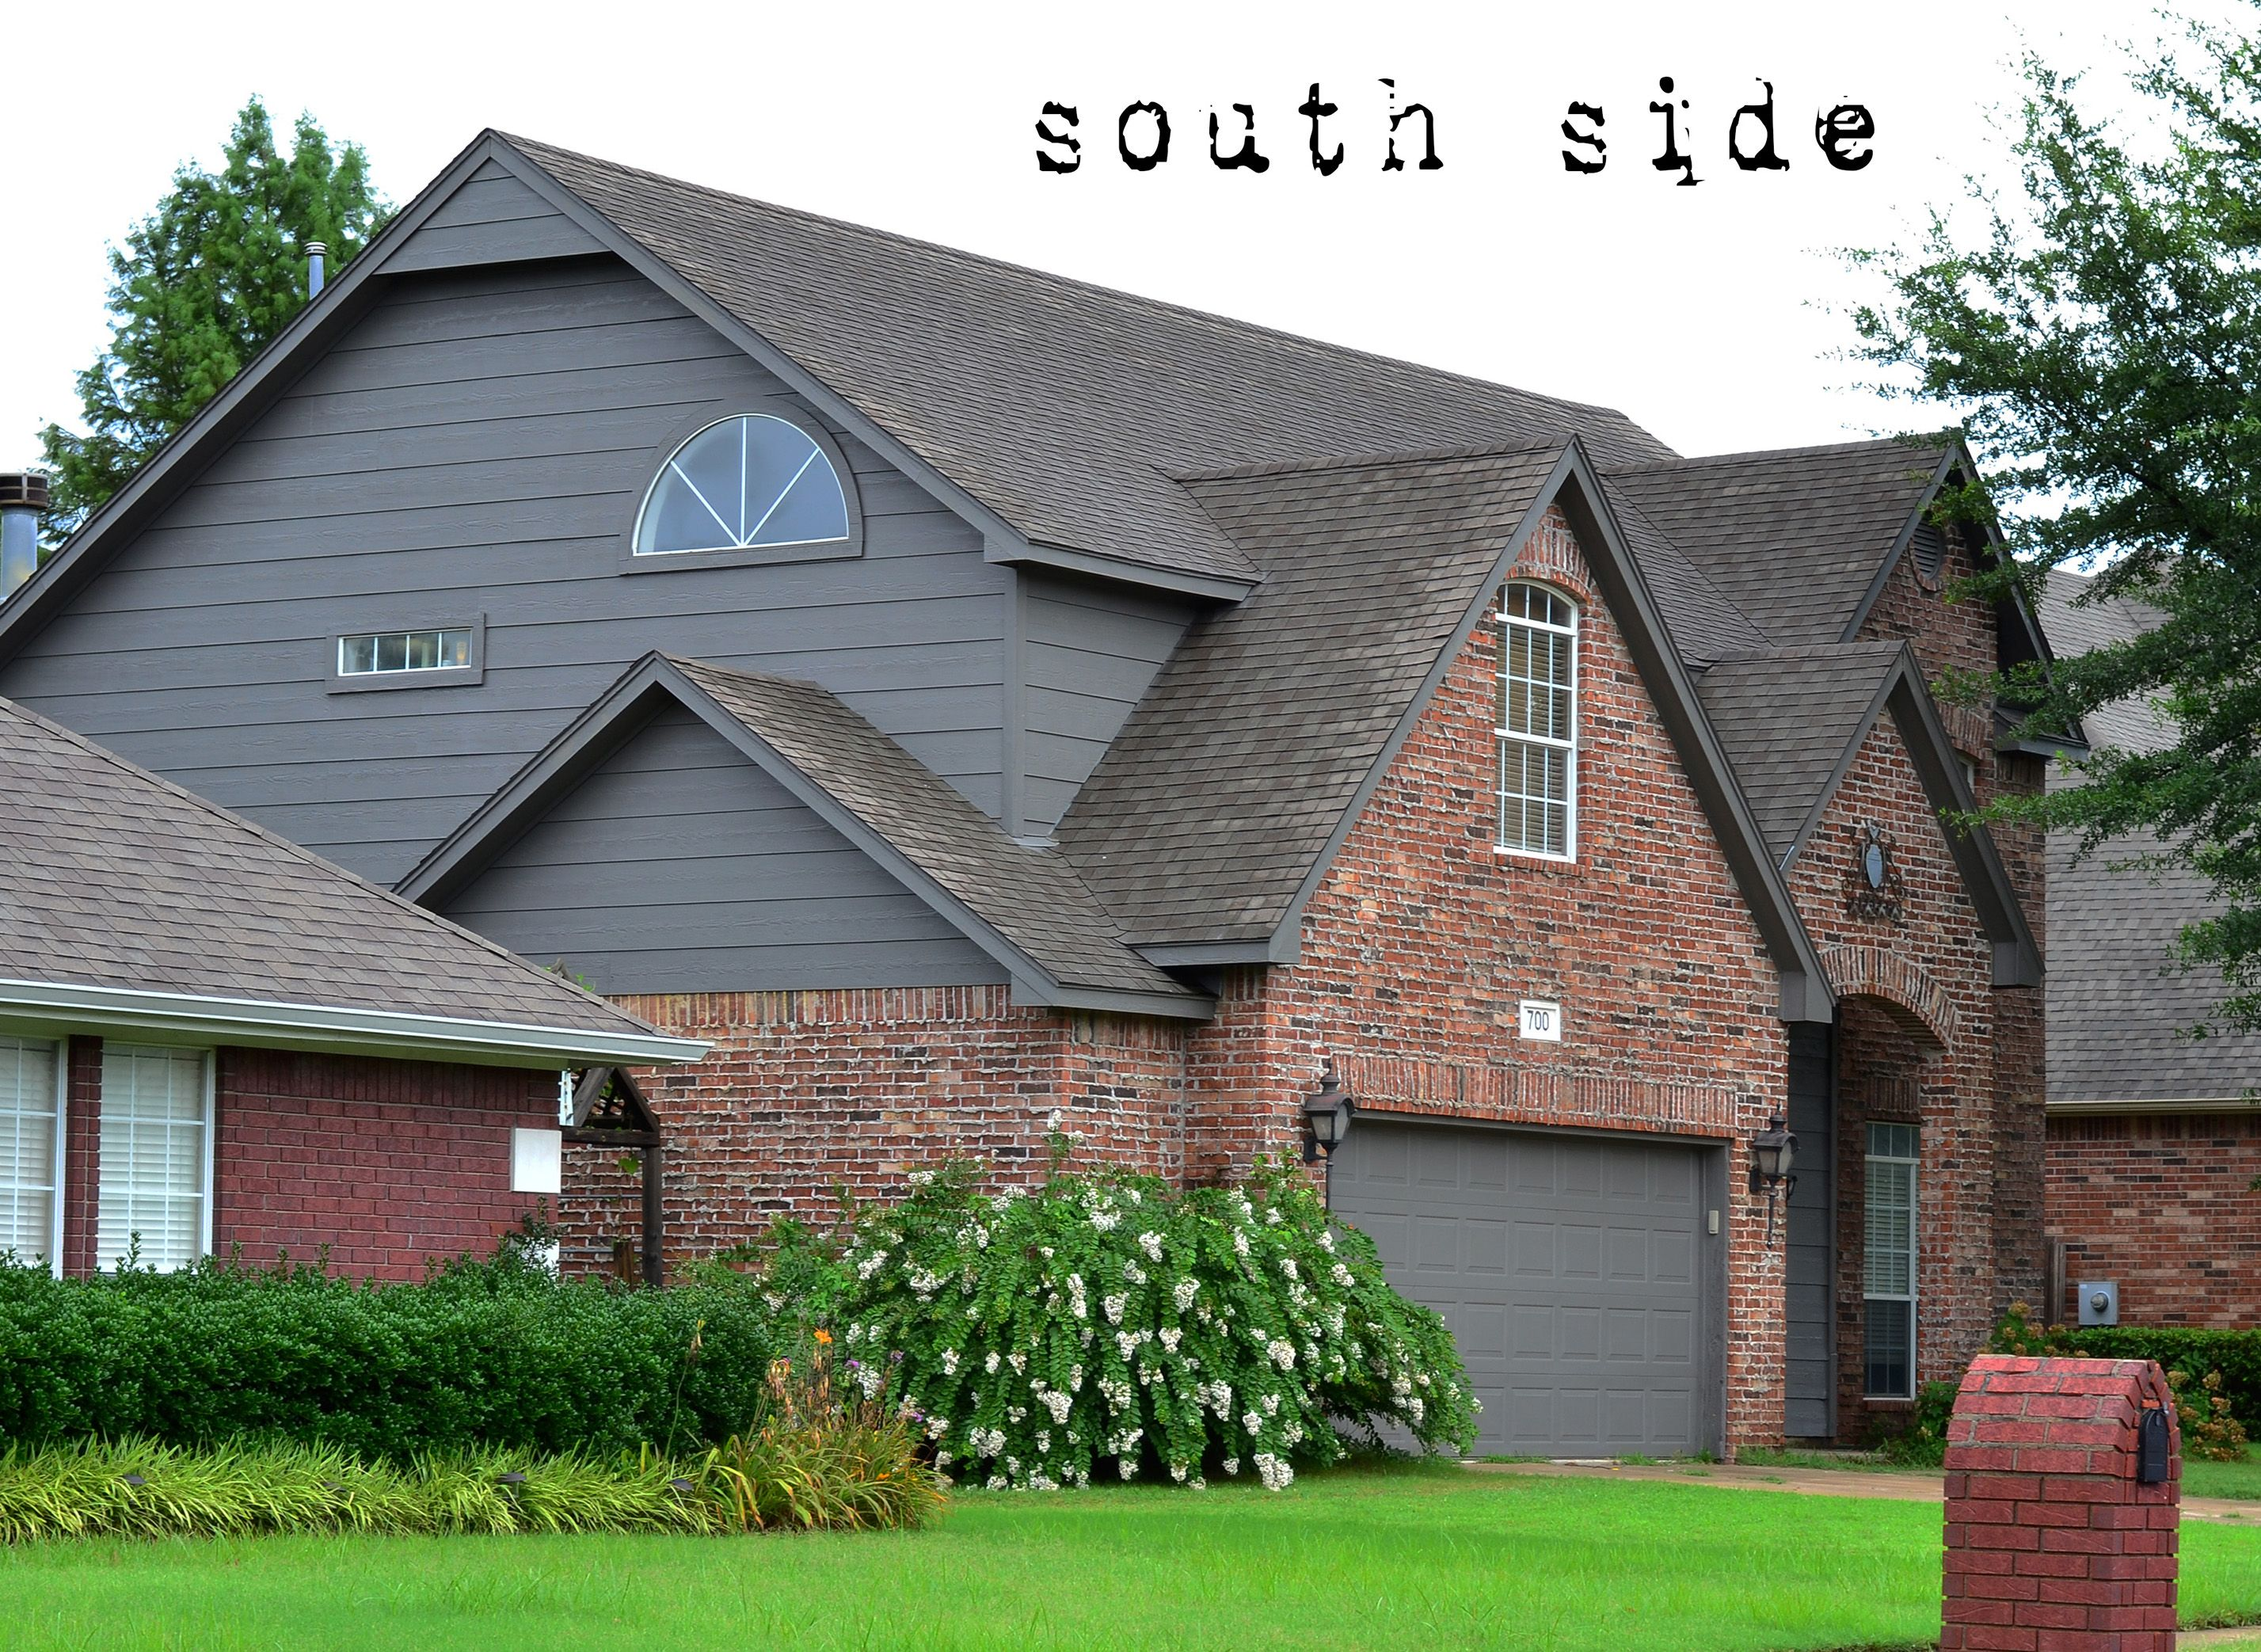 New House Paint on the Exterior   Exterior paint colors ... on Brick House Painting Ideas  id=87744